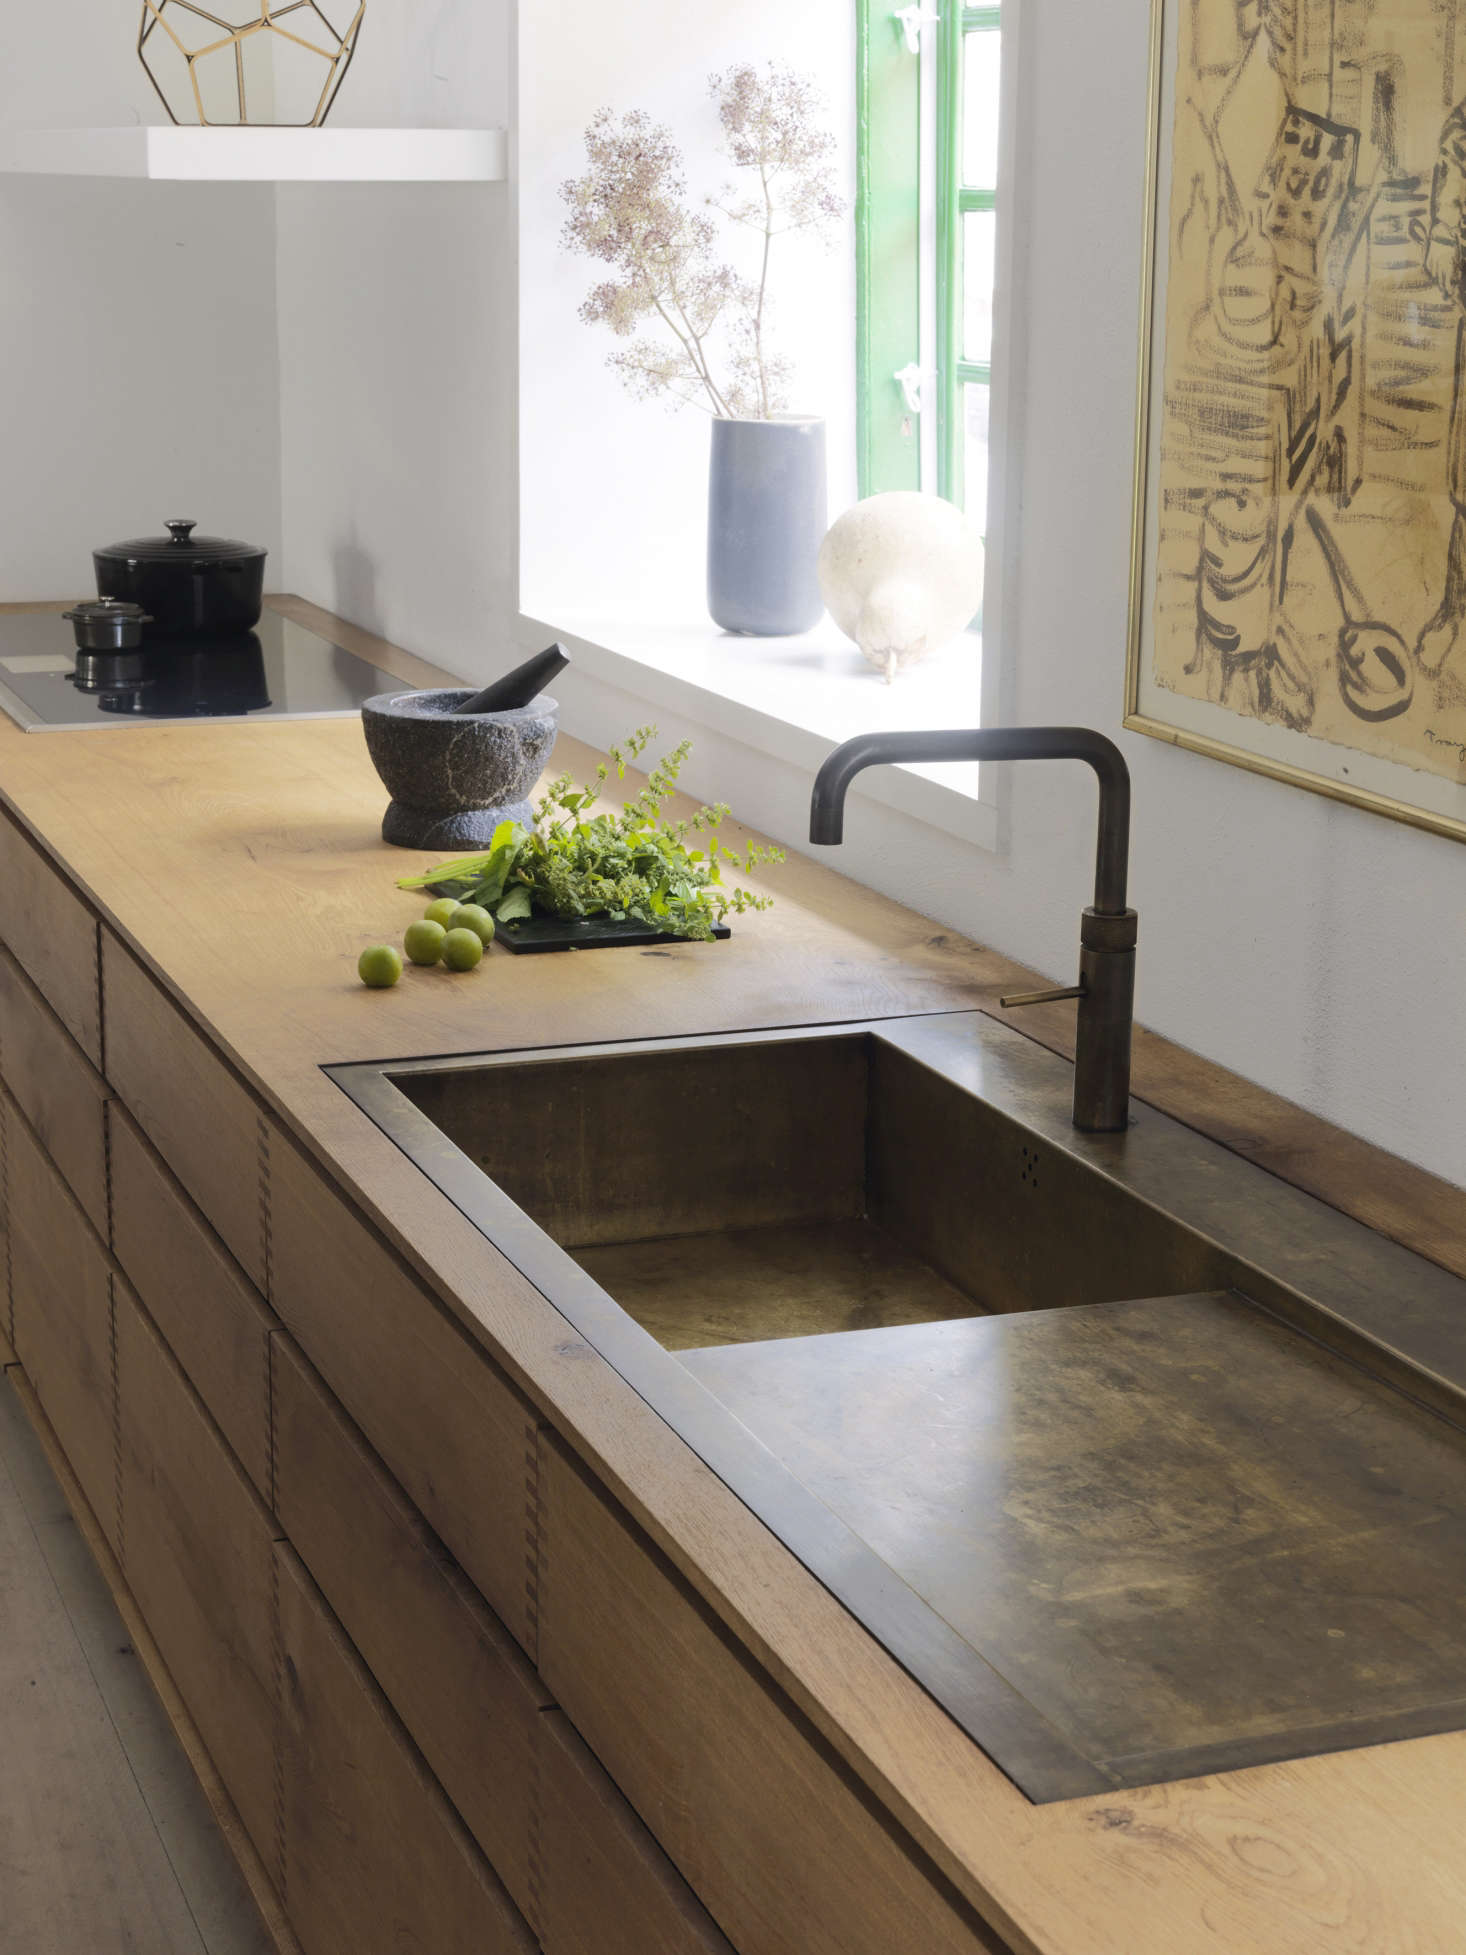 A weathered brass sink is integrated with the spacious countertop.